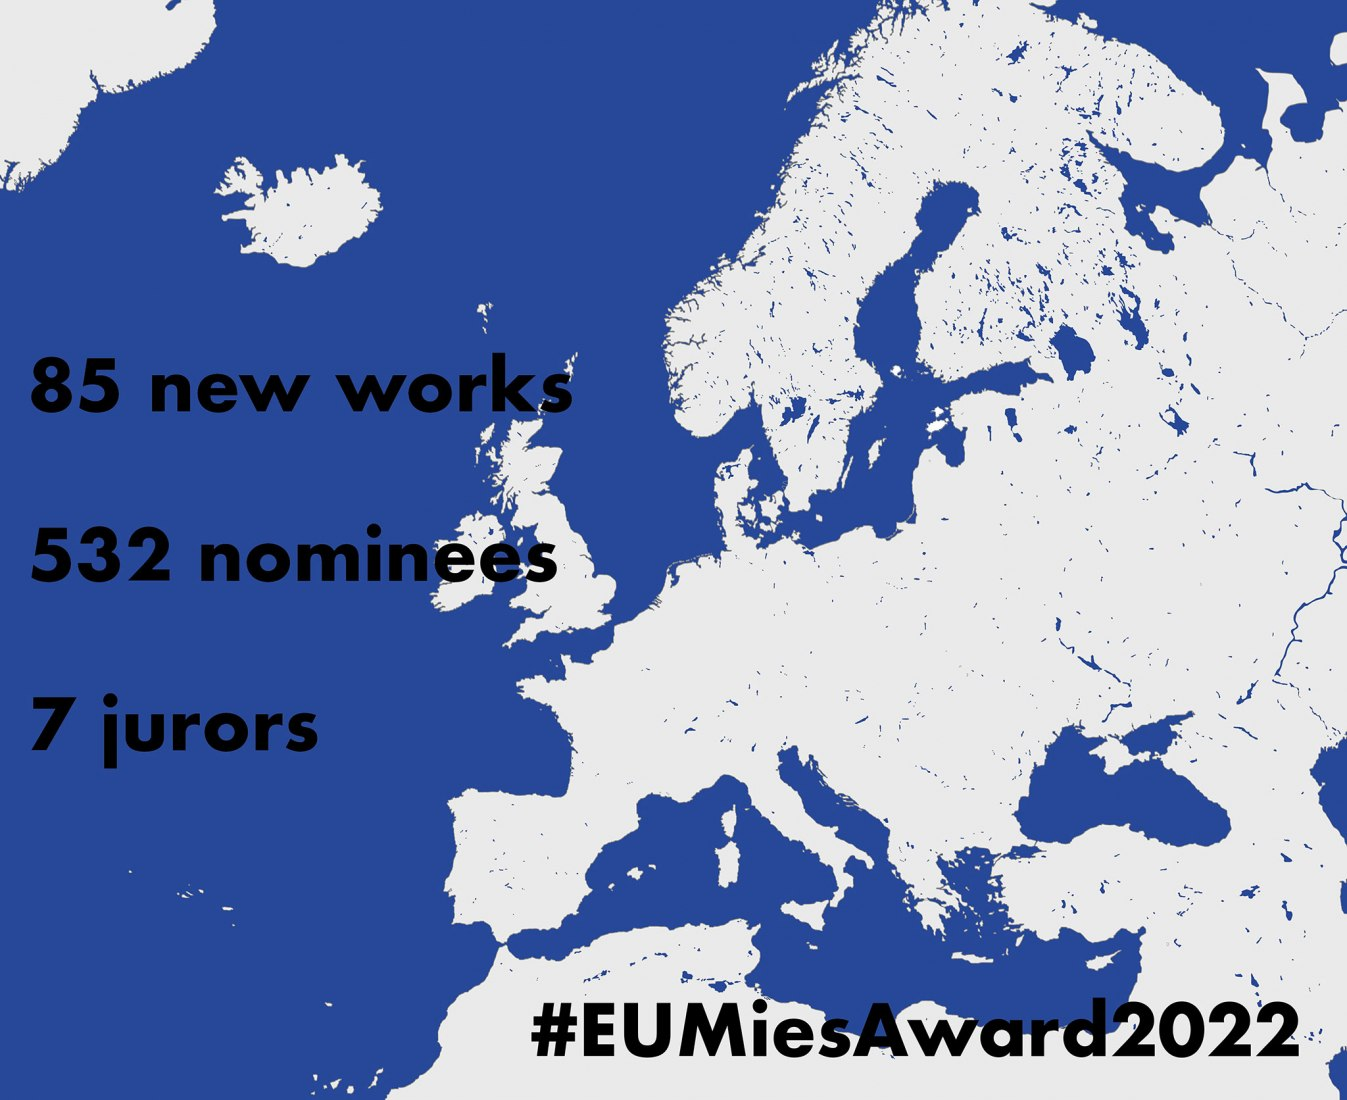 85 new works nominated to the EU Mies Award 2022.